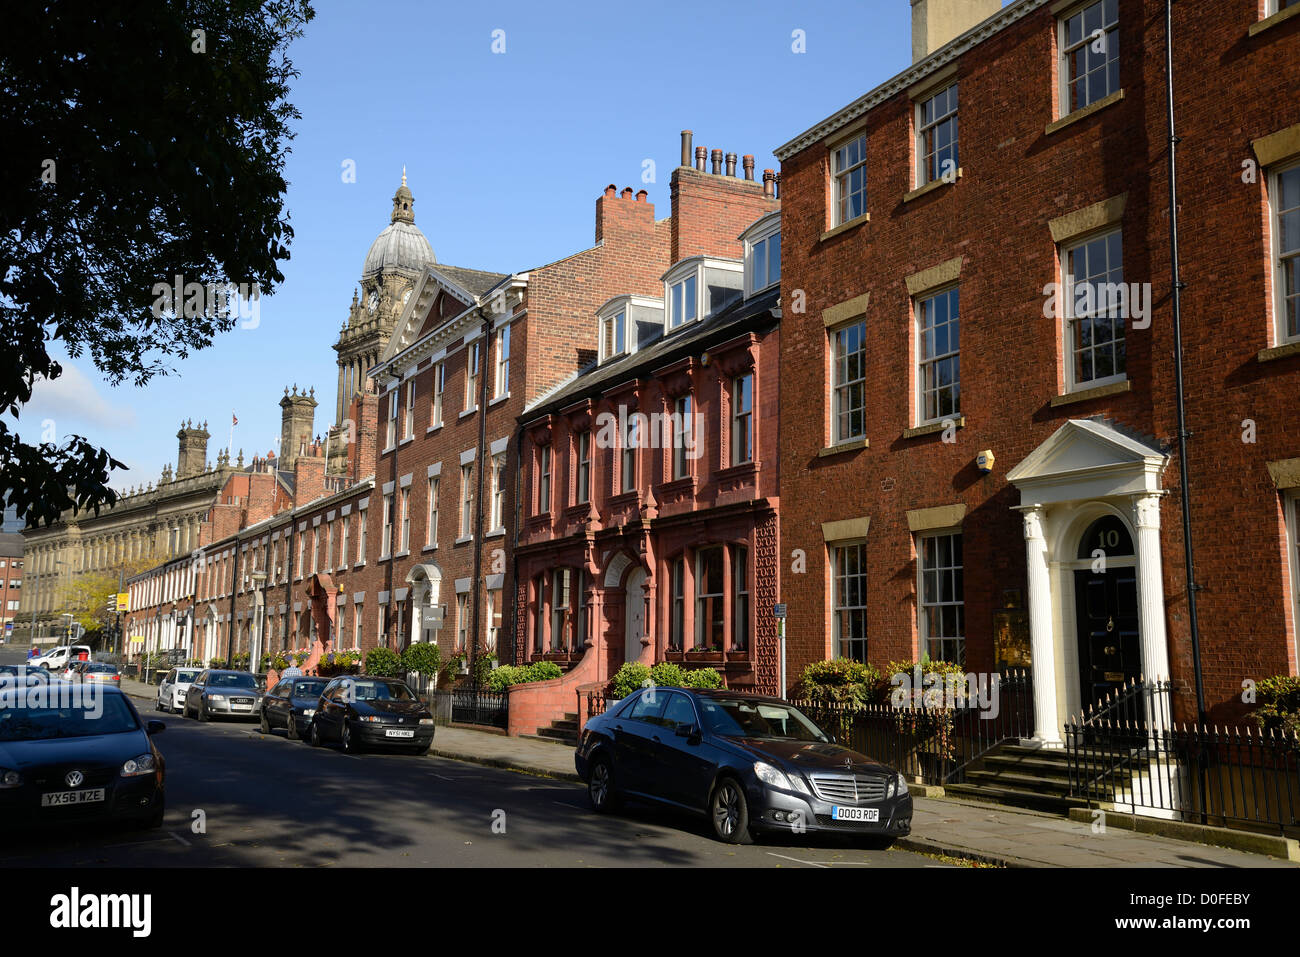 A street in central Leeds showing various types of architecture. Park Square East. - Stock Image